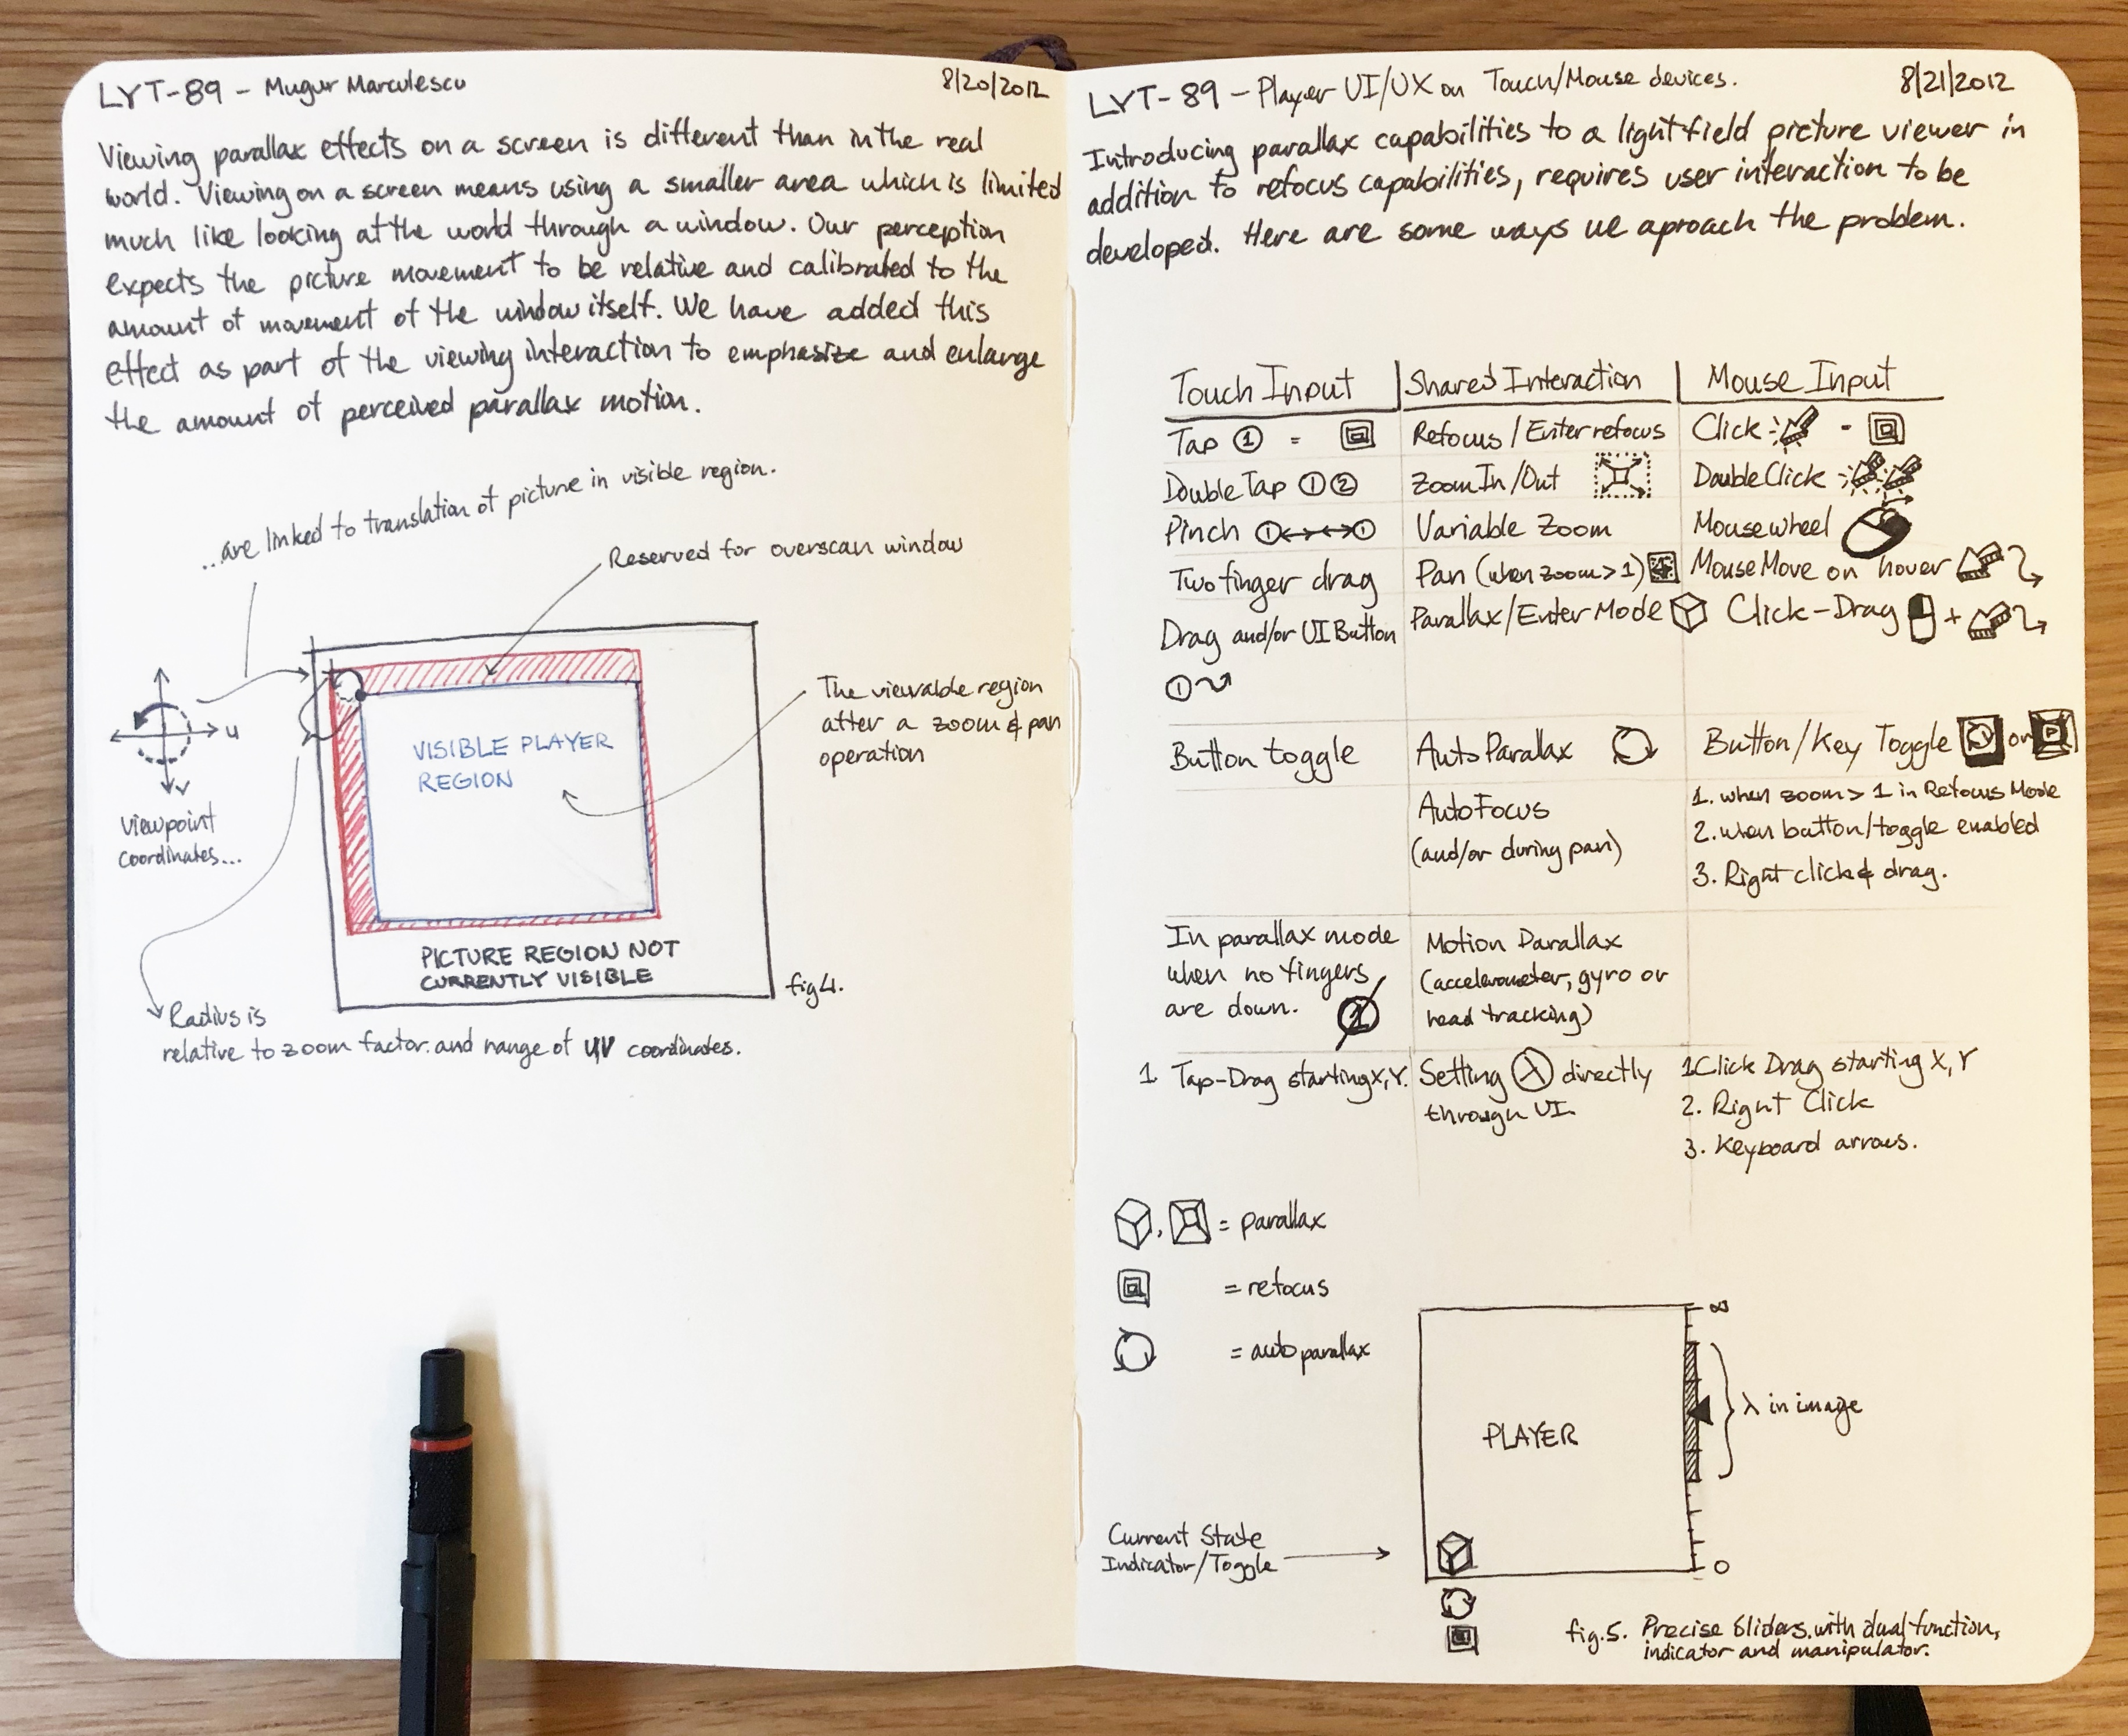 Lytro player UX process sketches for input map in patent application.